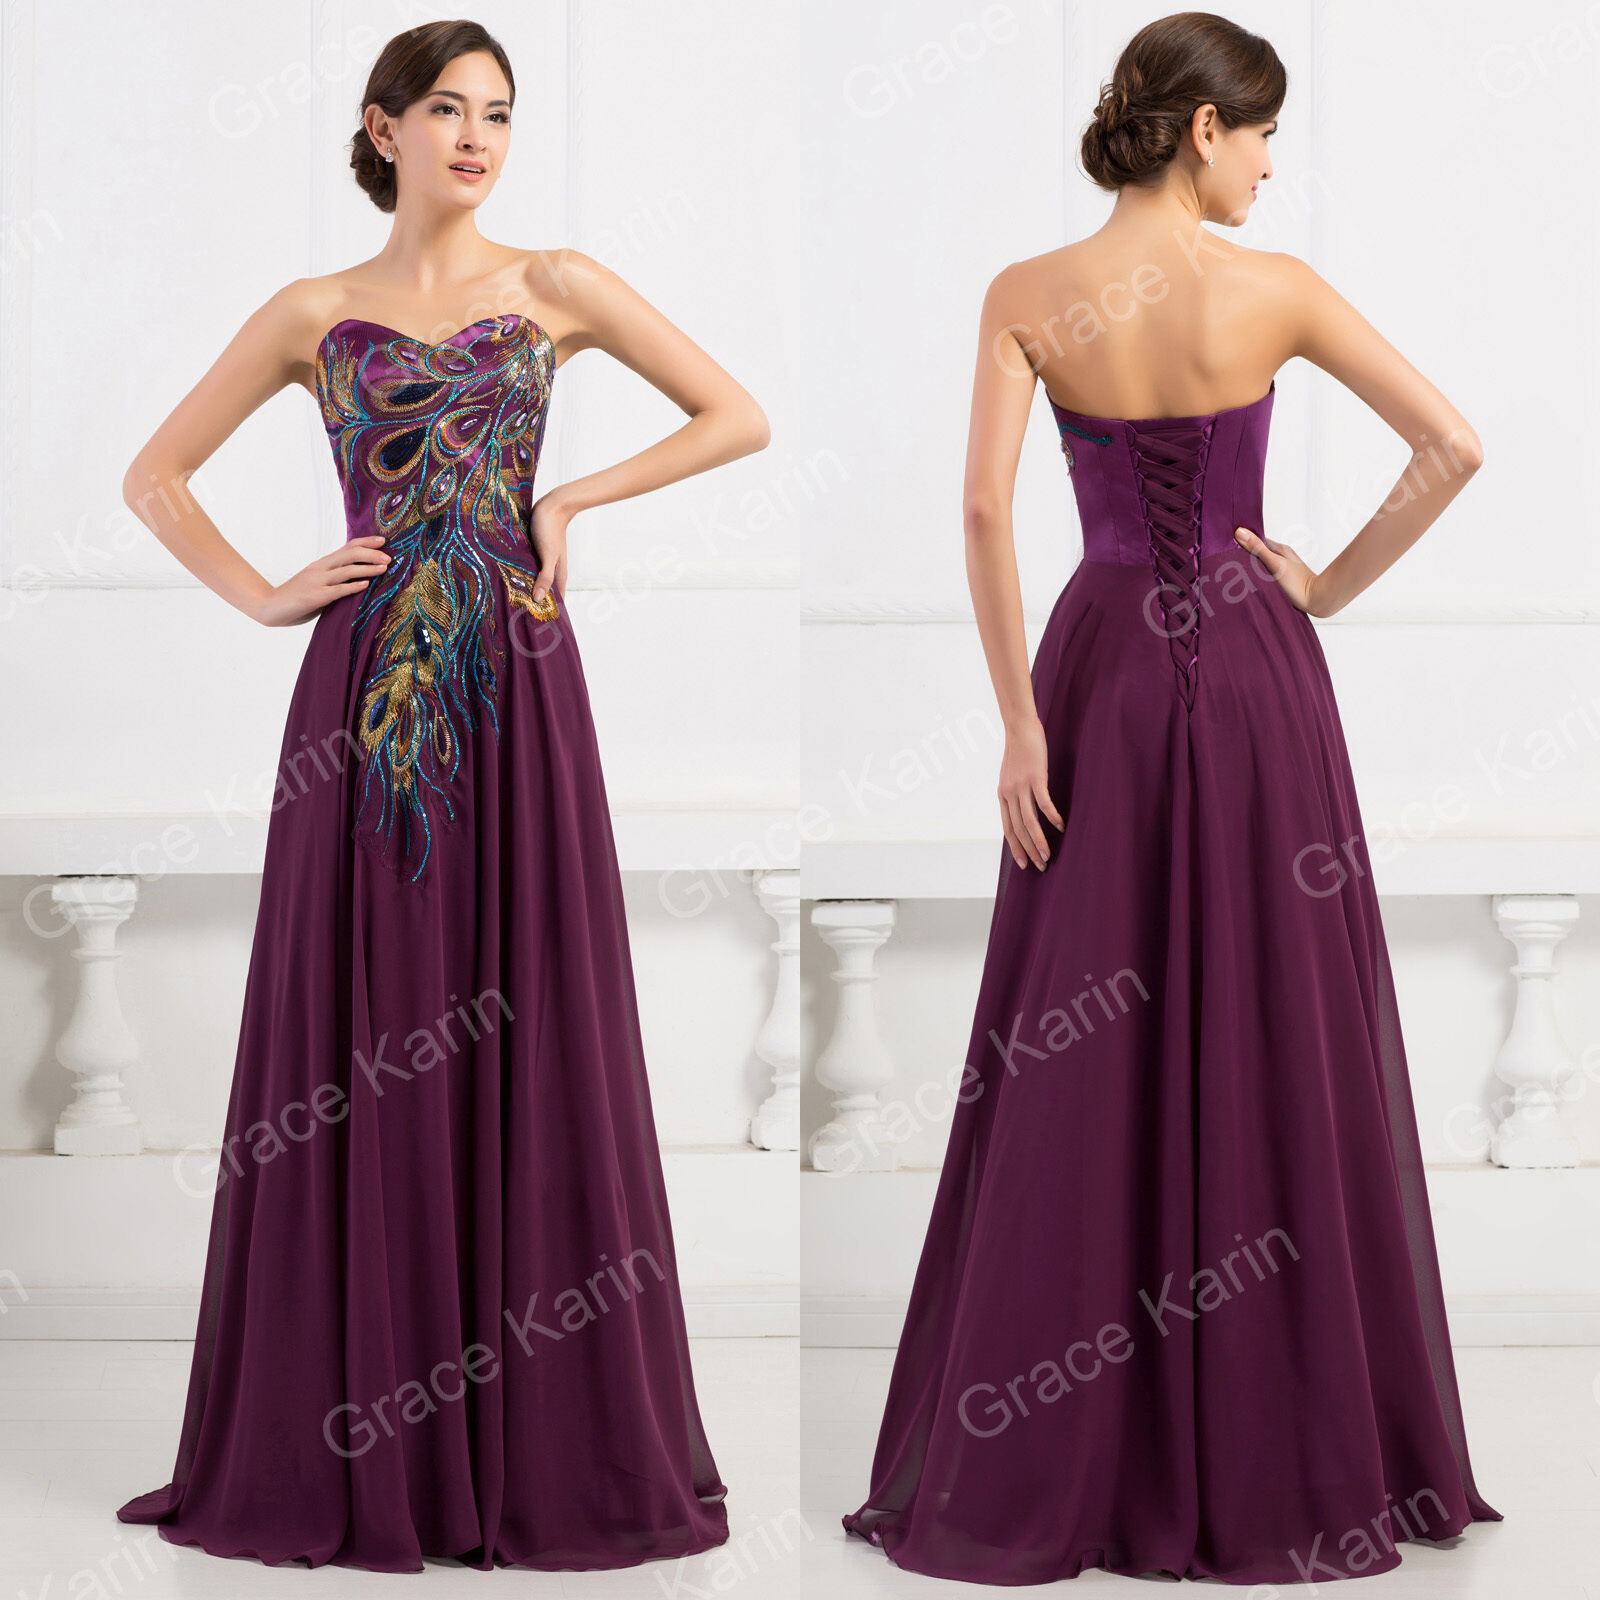 Grace karin peacock formal evening gown prom party lady chiffon picture 5 of 10 ombrellifo Images